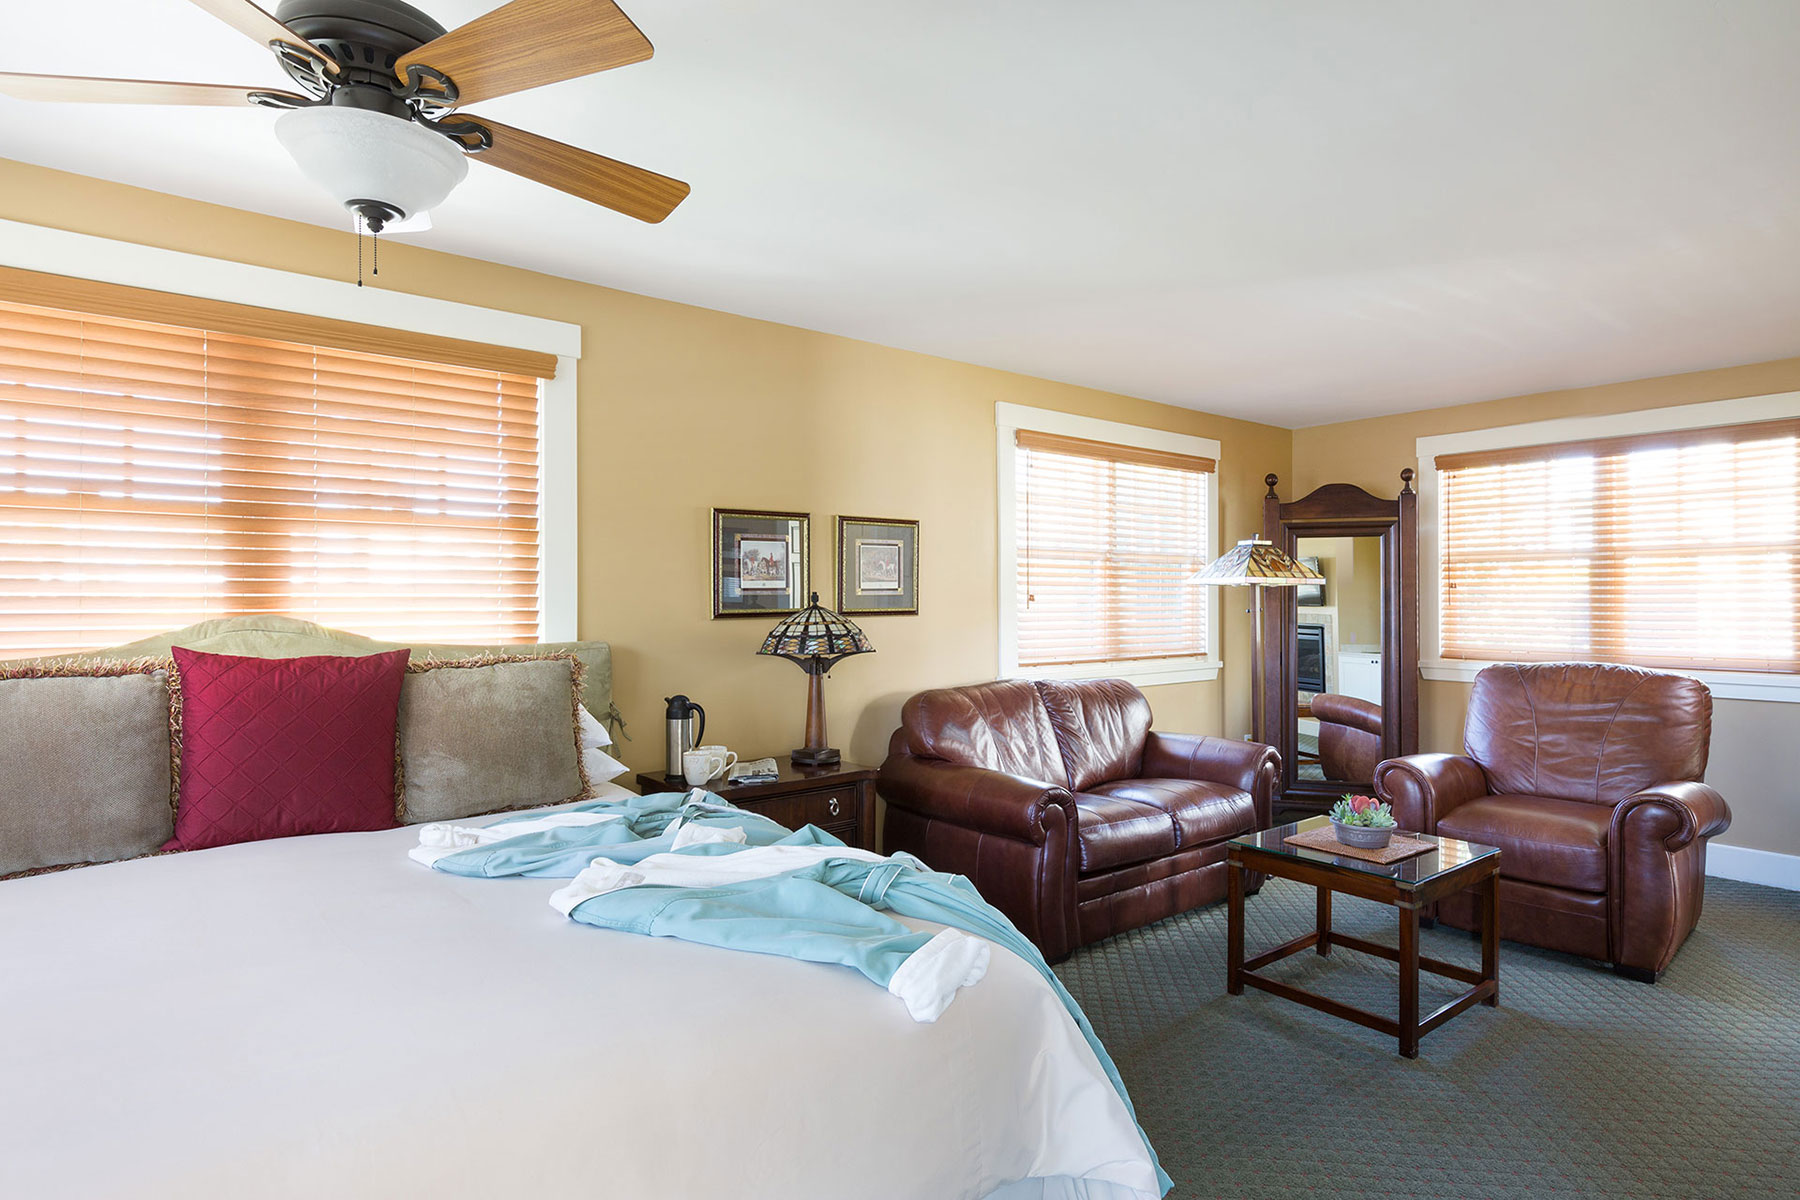 Garden King Guestrooms